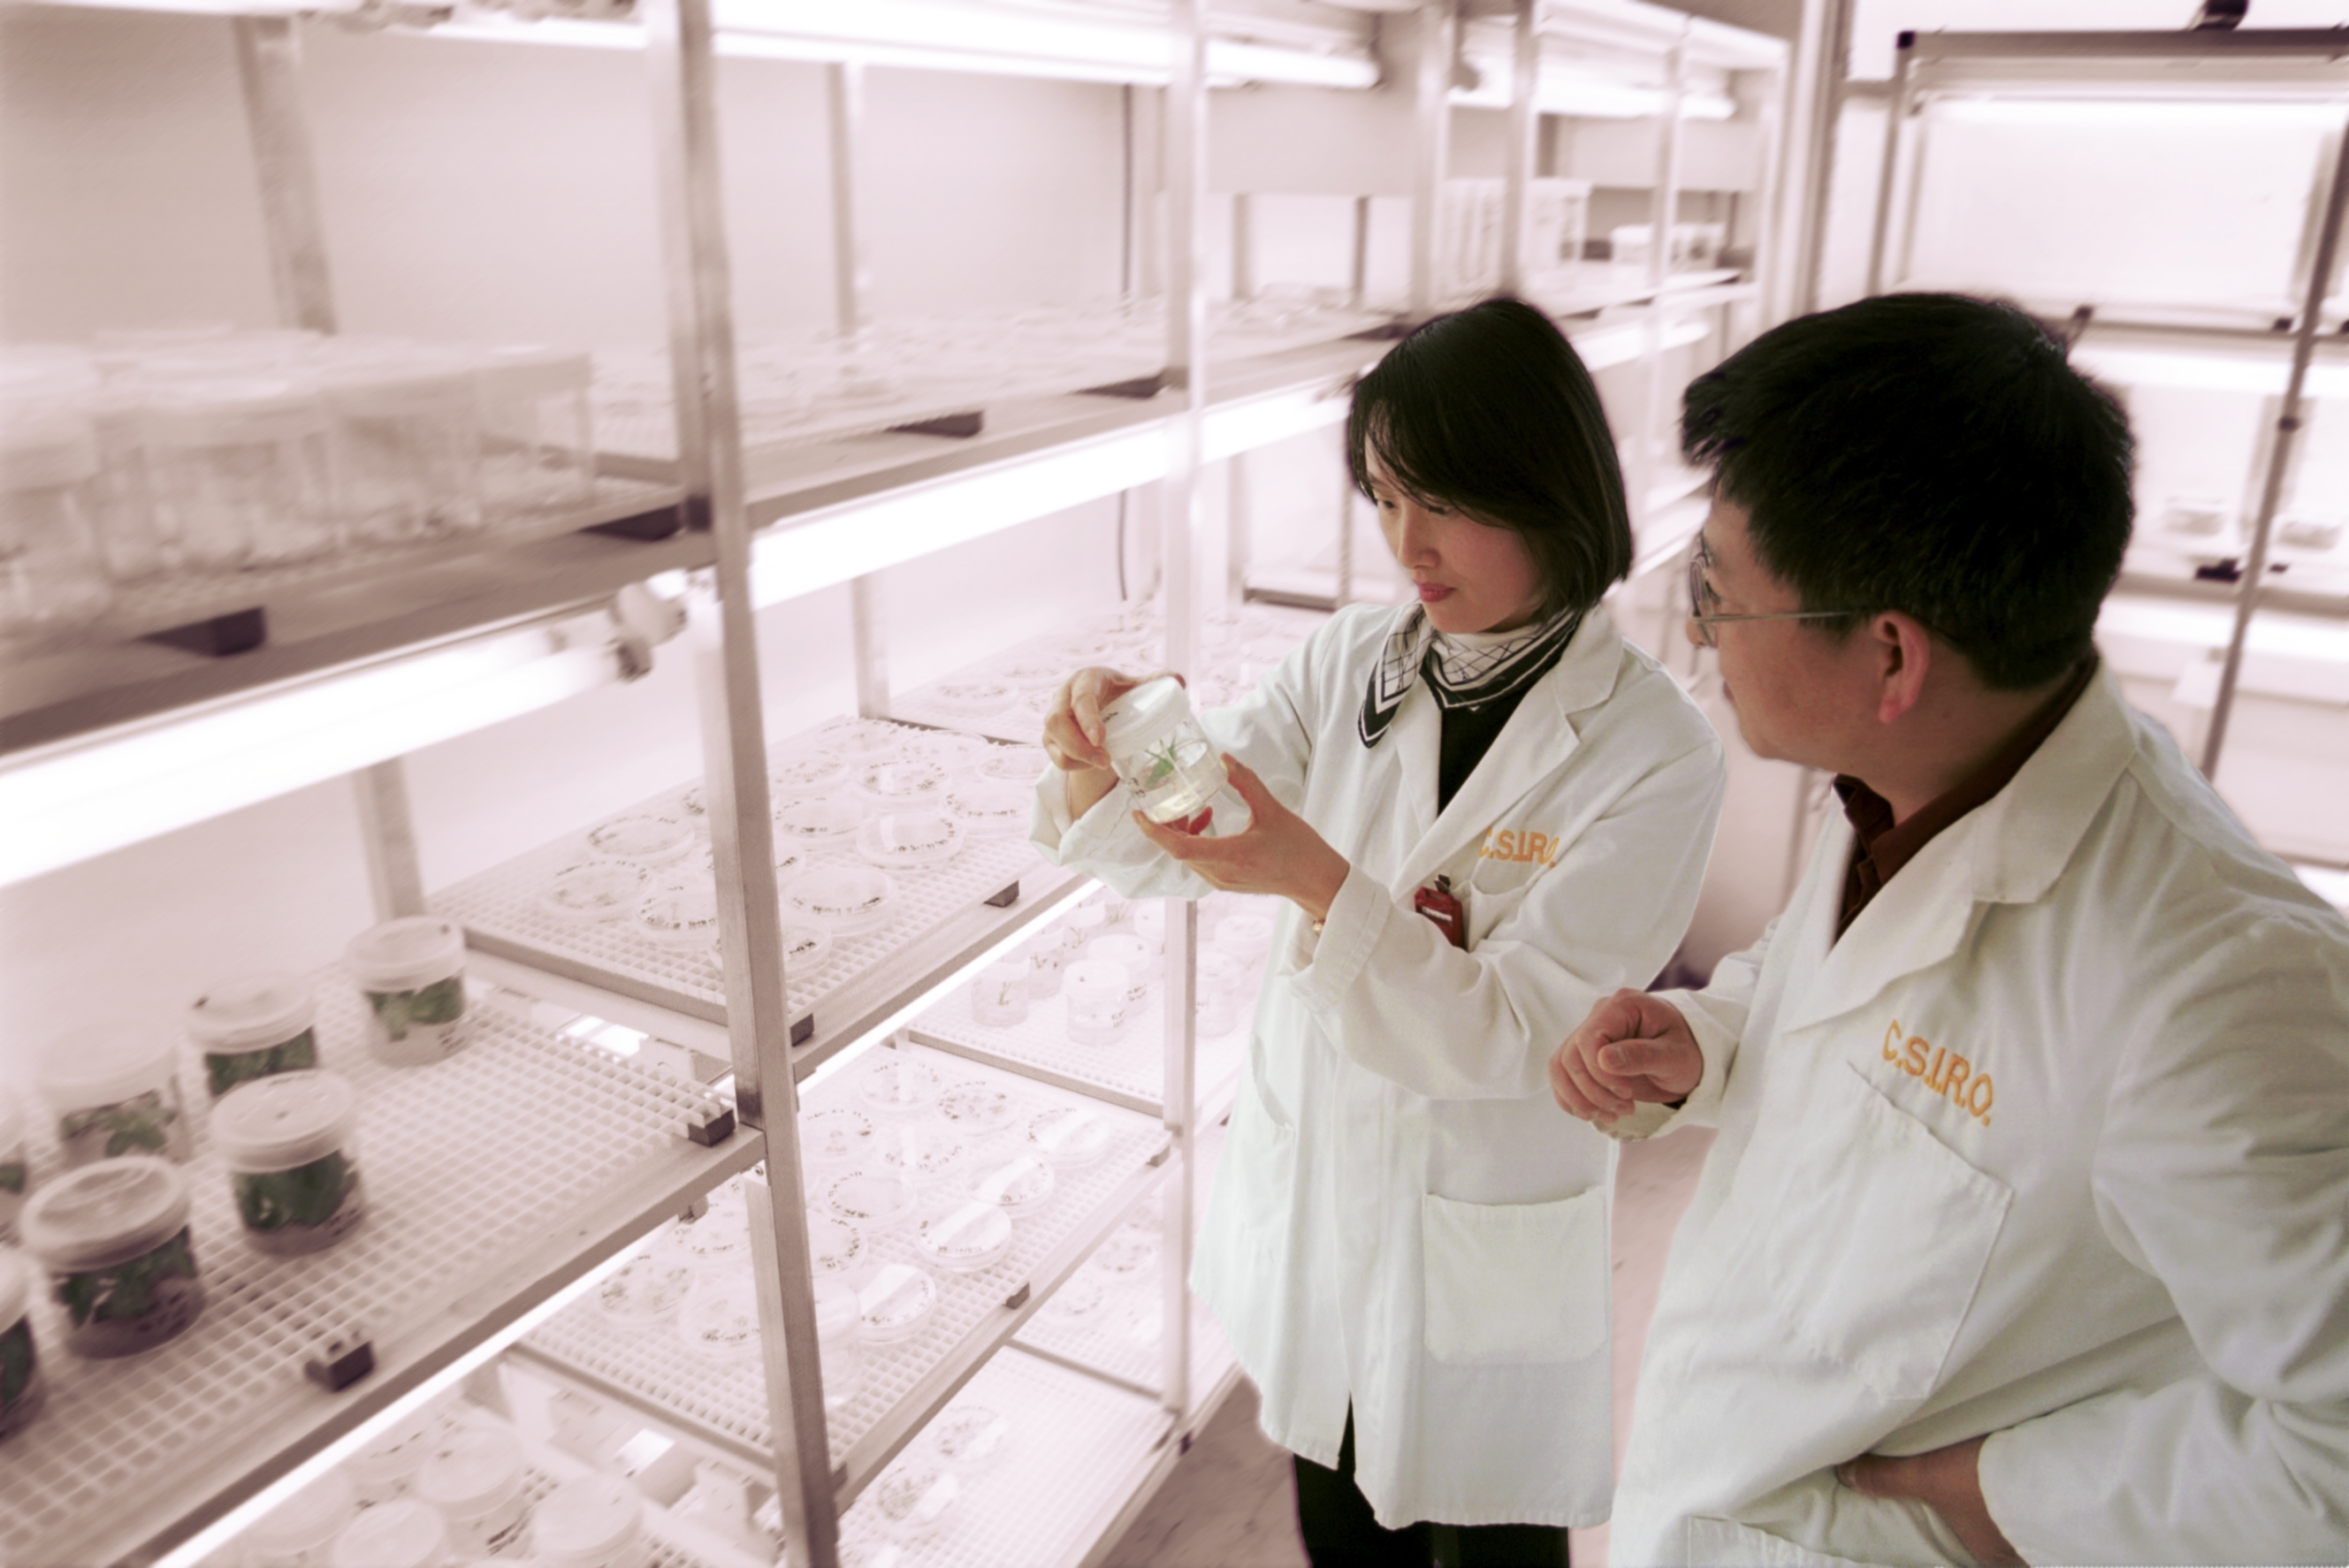 Two researchers in a laboratory looking at a small container in which a barley seedling in growing